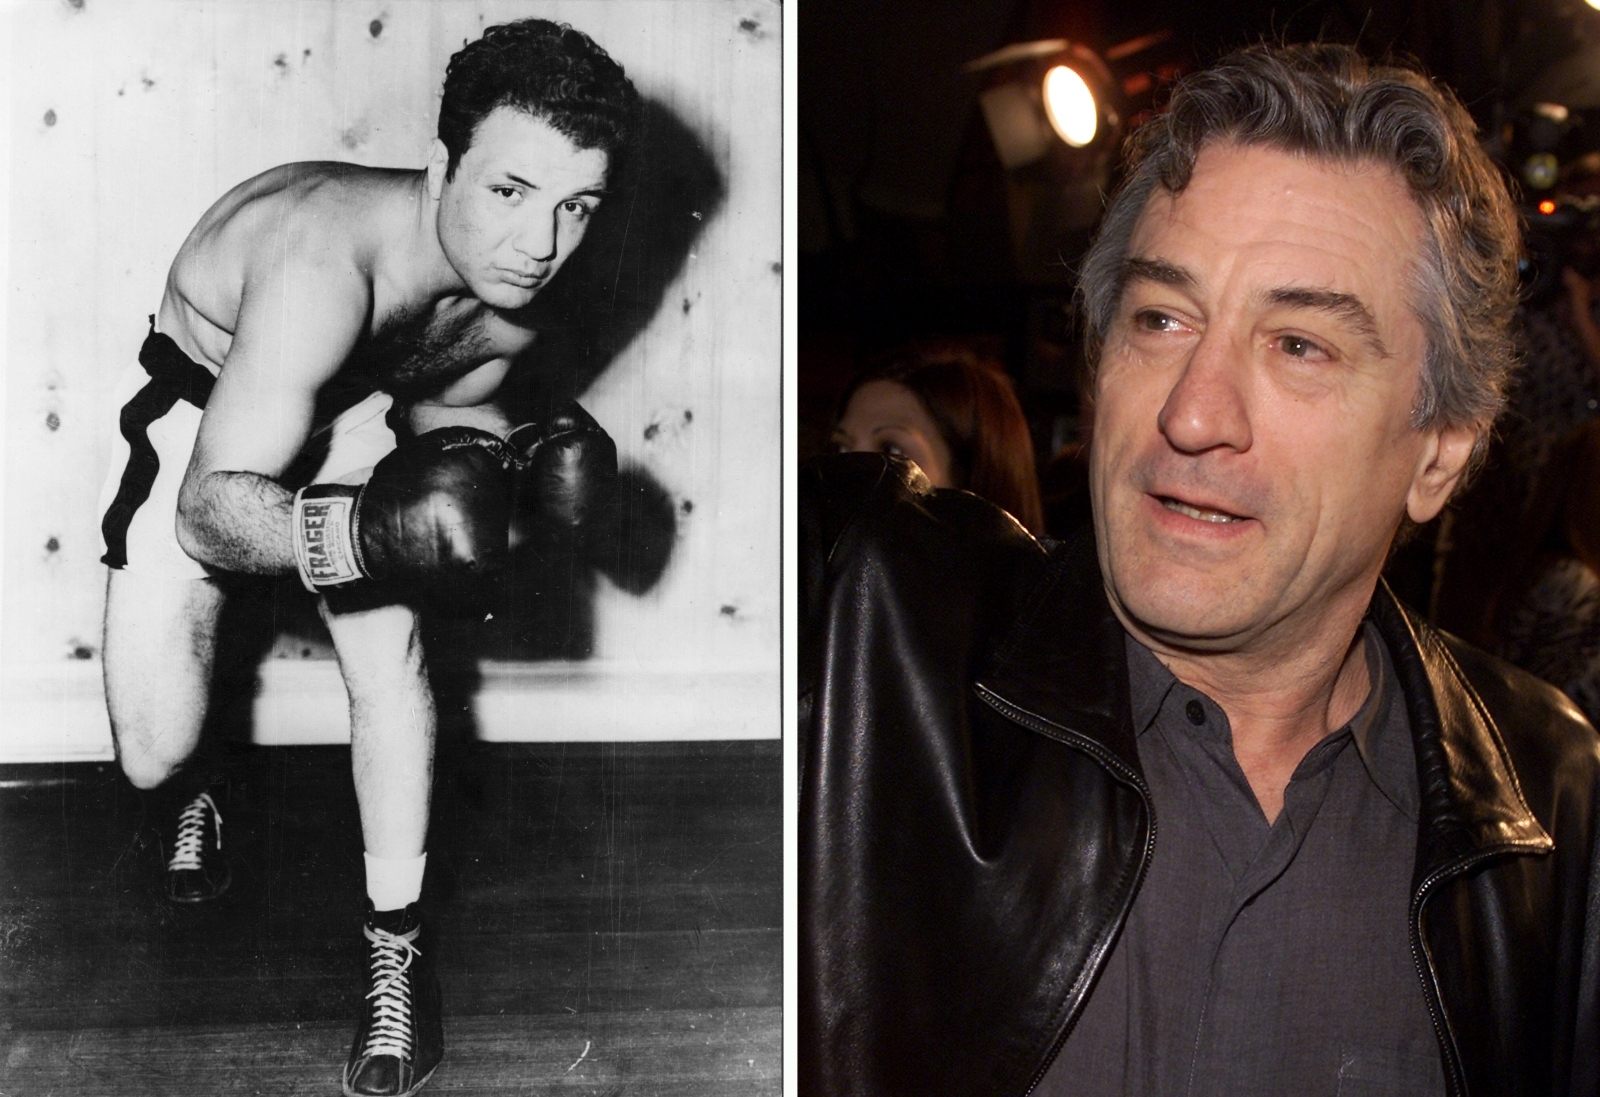 Jake LaMotta dead: Boxing legend passes away aged 95